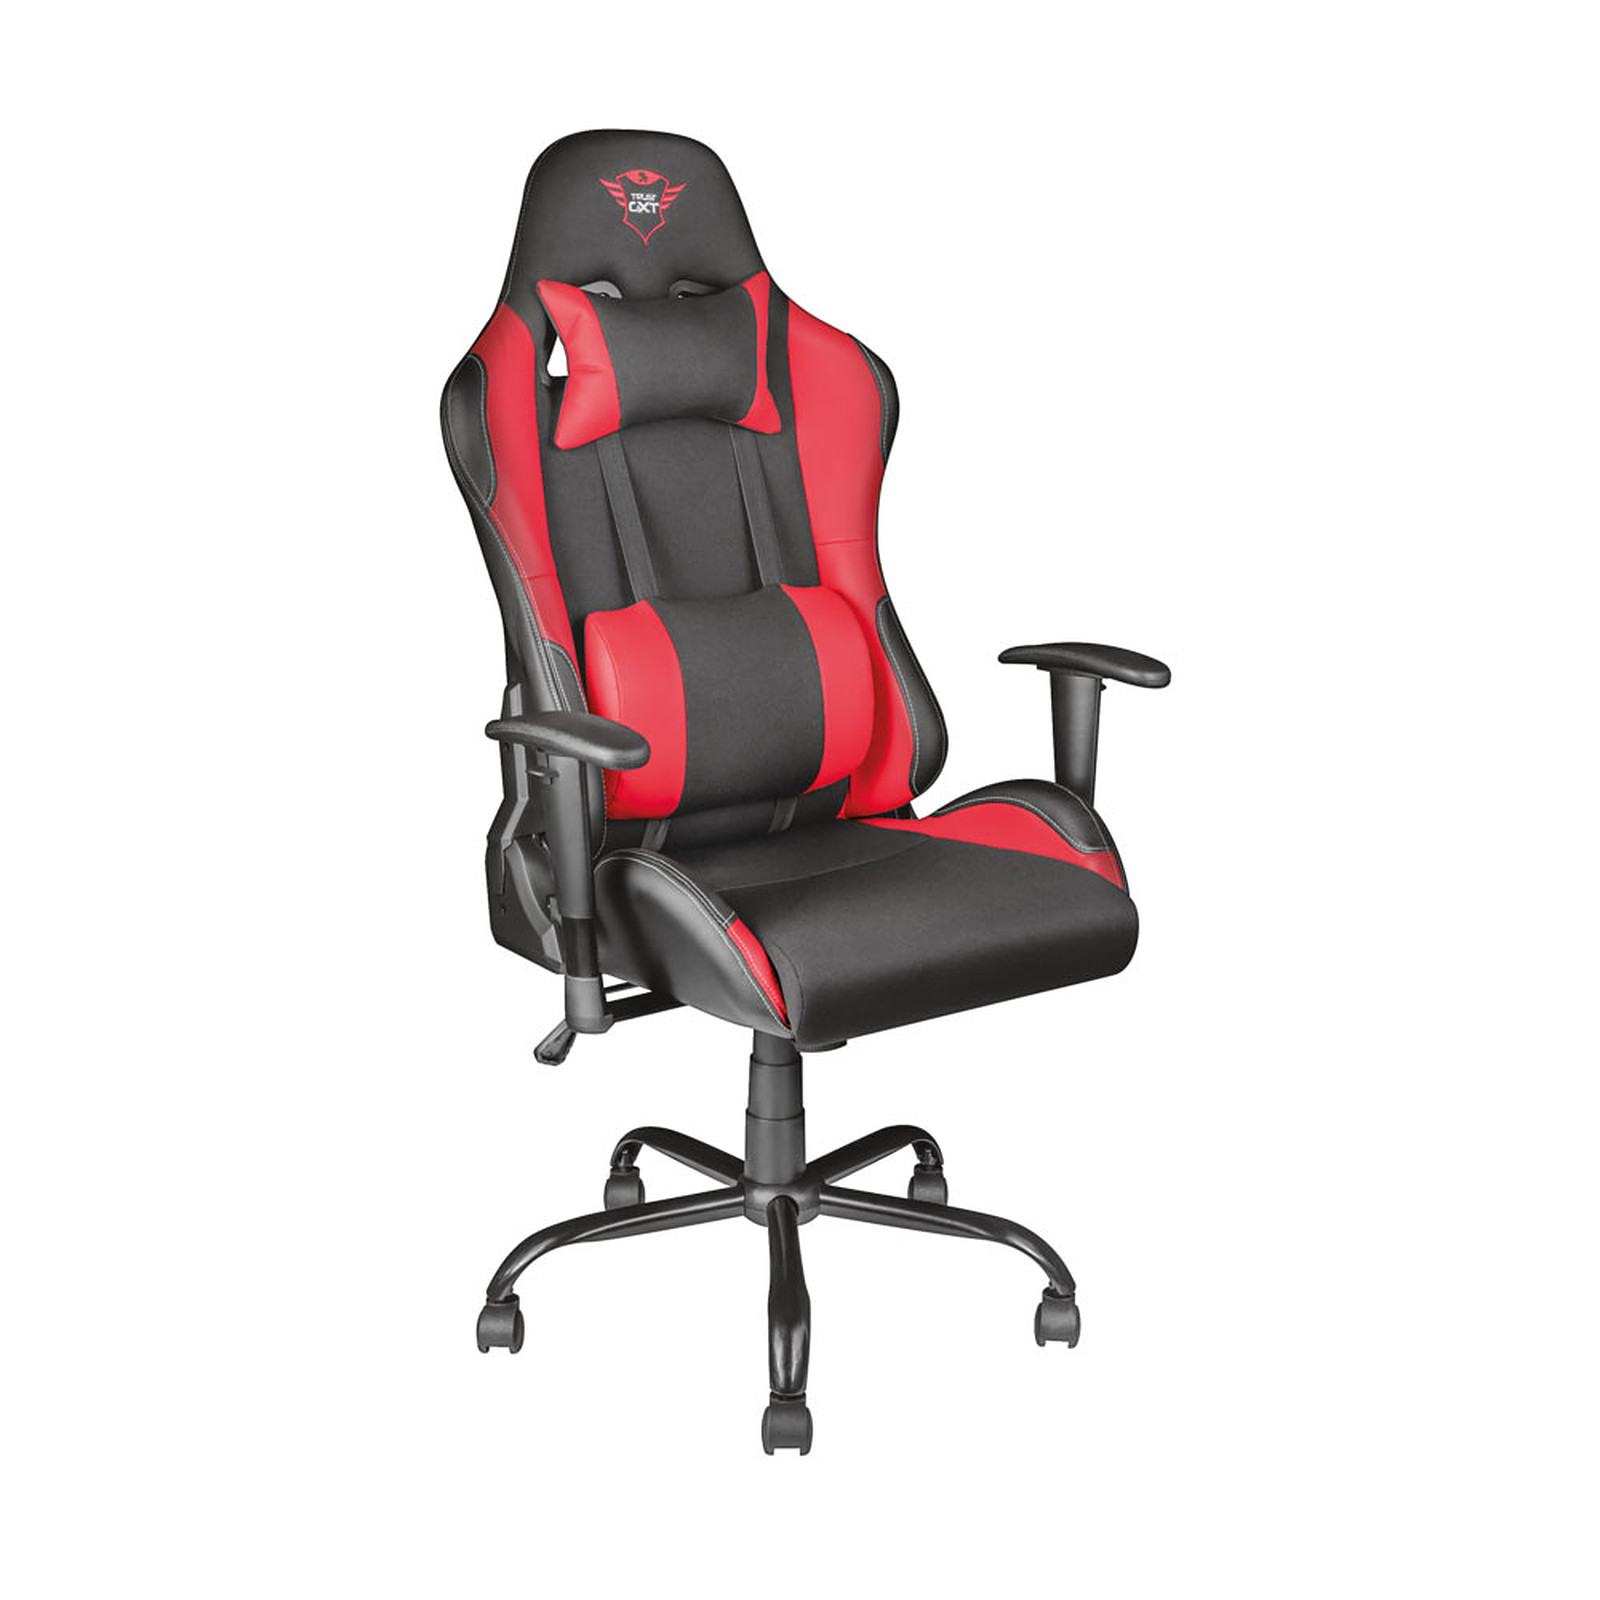 Chaises Bureau Valence Trust Gaming Gxt 707 Resto Fauteuil Gamer Trust Gaming Sur Ldlc